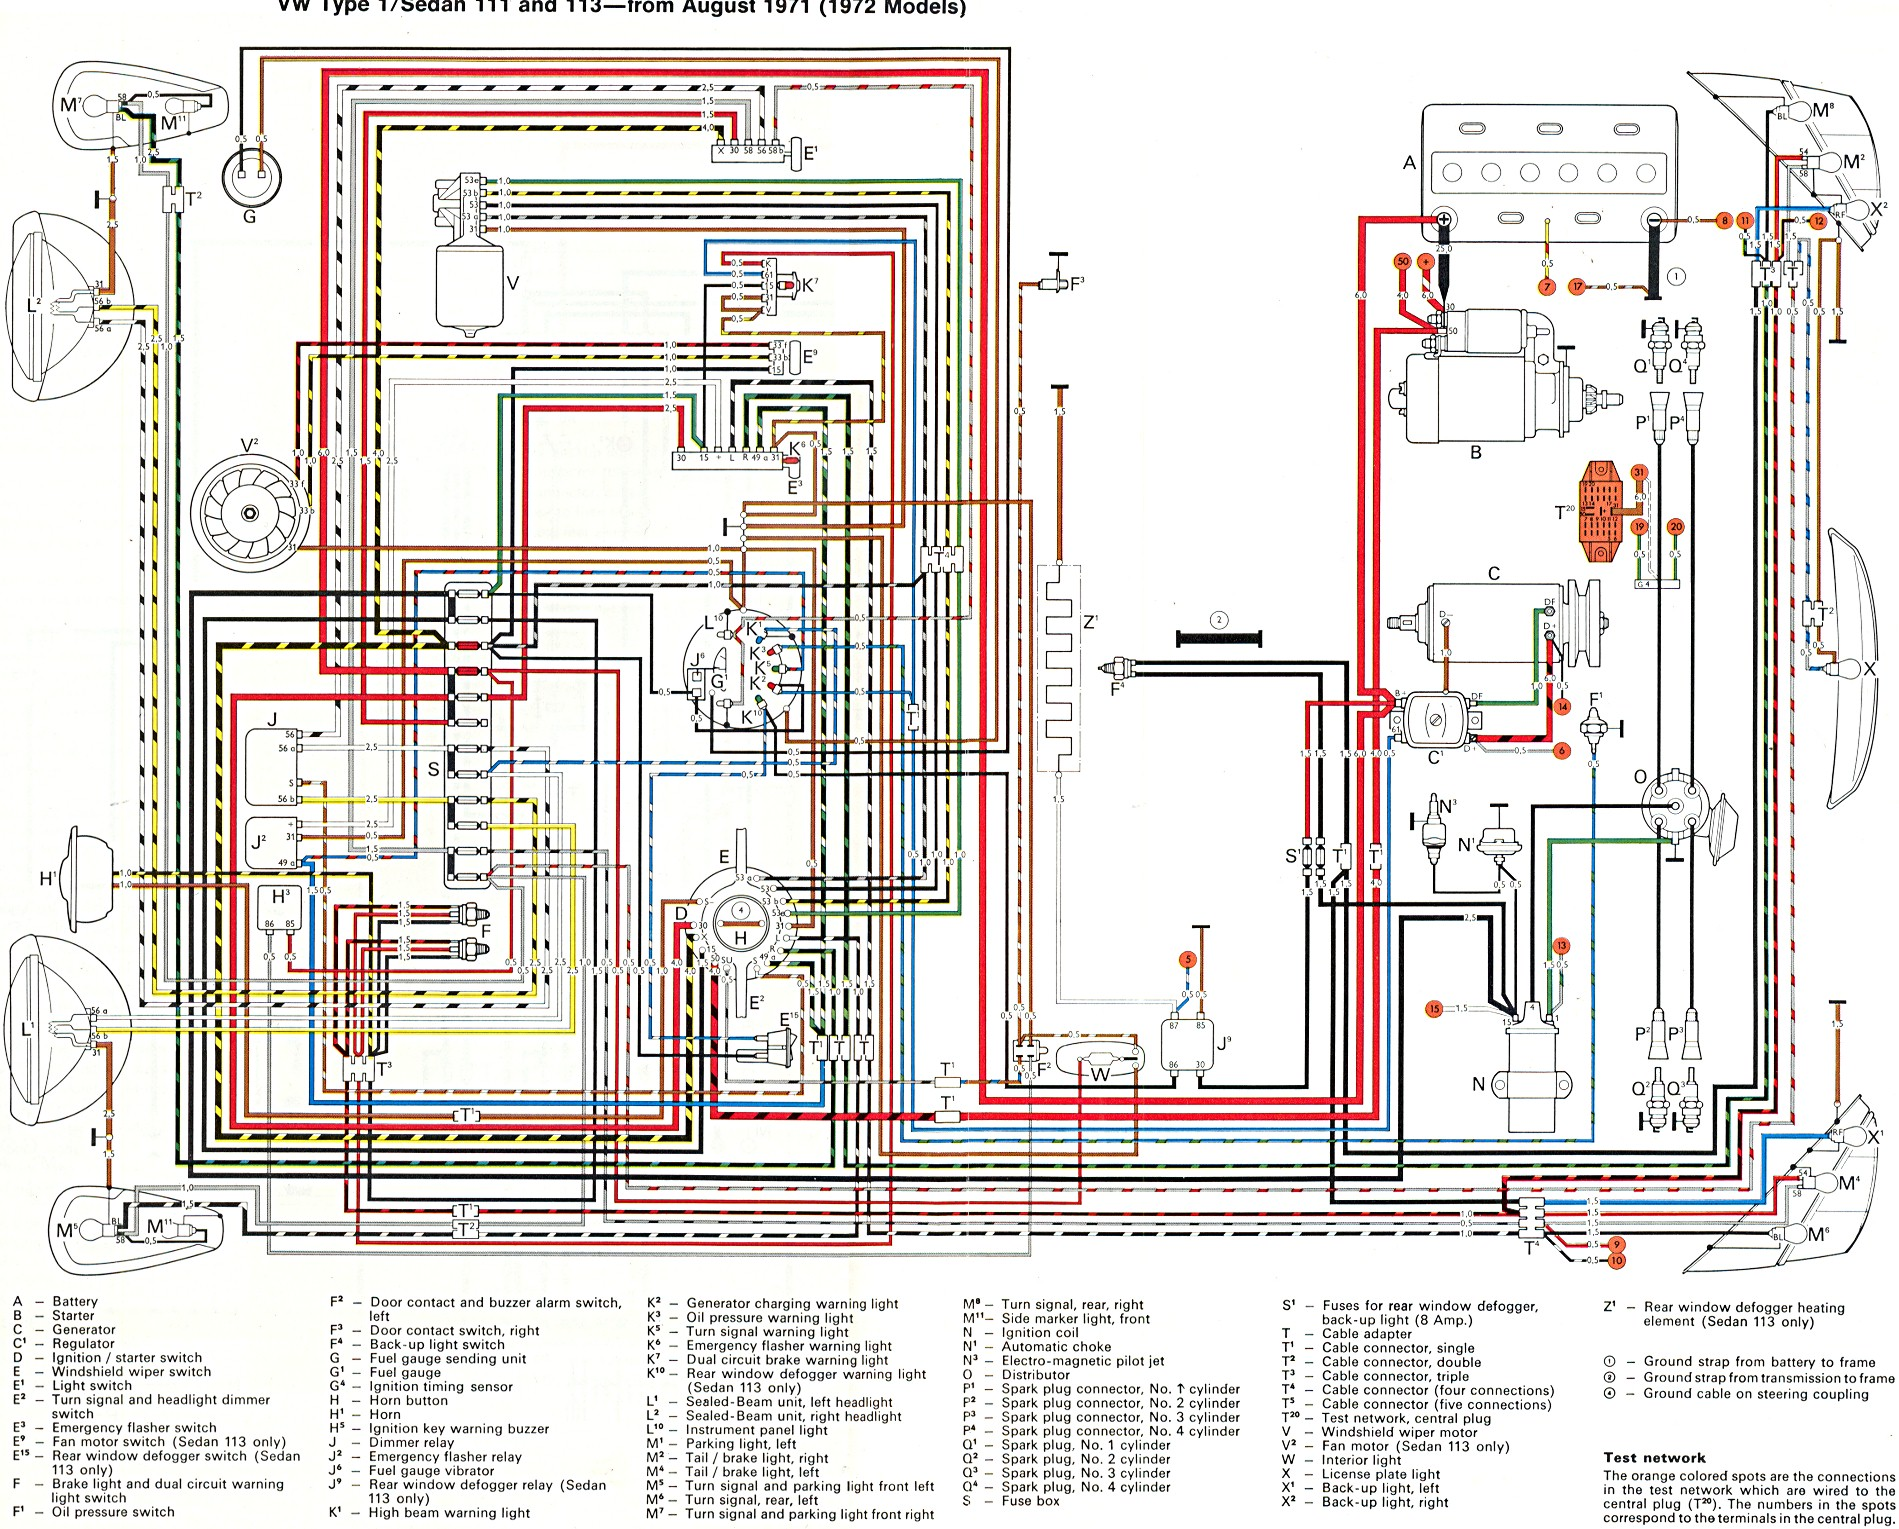 97 Ford F150 Fuse Diagram further RepairGuideContent likewise Honda Atc 110 Engine besides Gy6 125 150cc 4 Stroke 152qmi 152qmj 157qmi 157qmj as well Subaru Ej20 Wiring Diagram. on tomos engine diagram